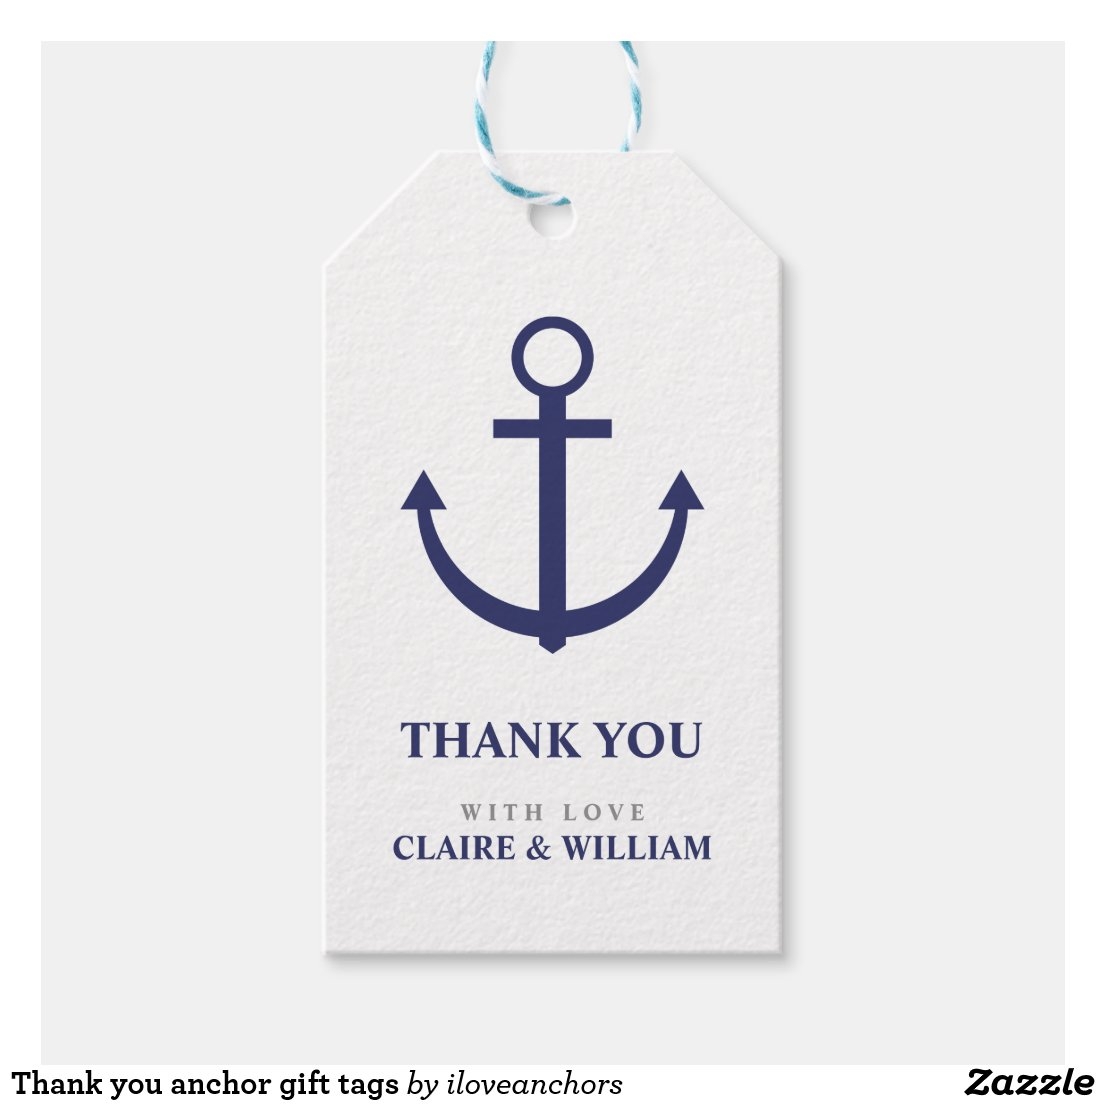 Thank you anchor gift tags